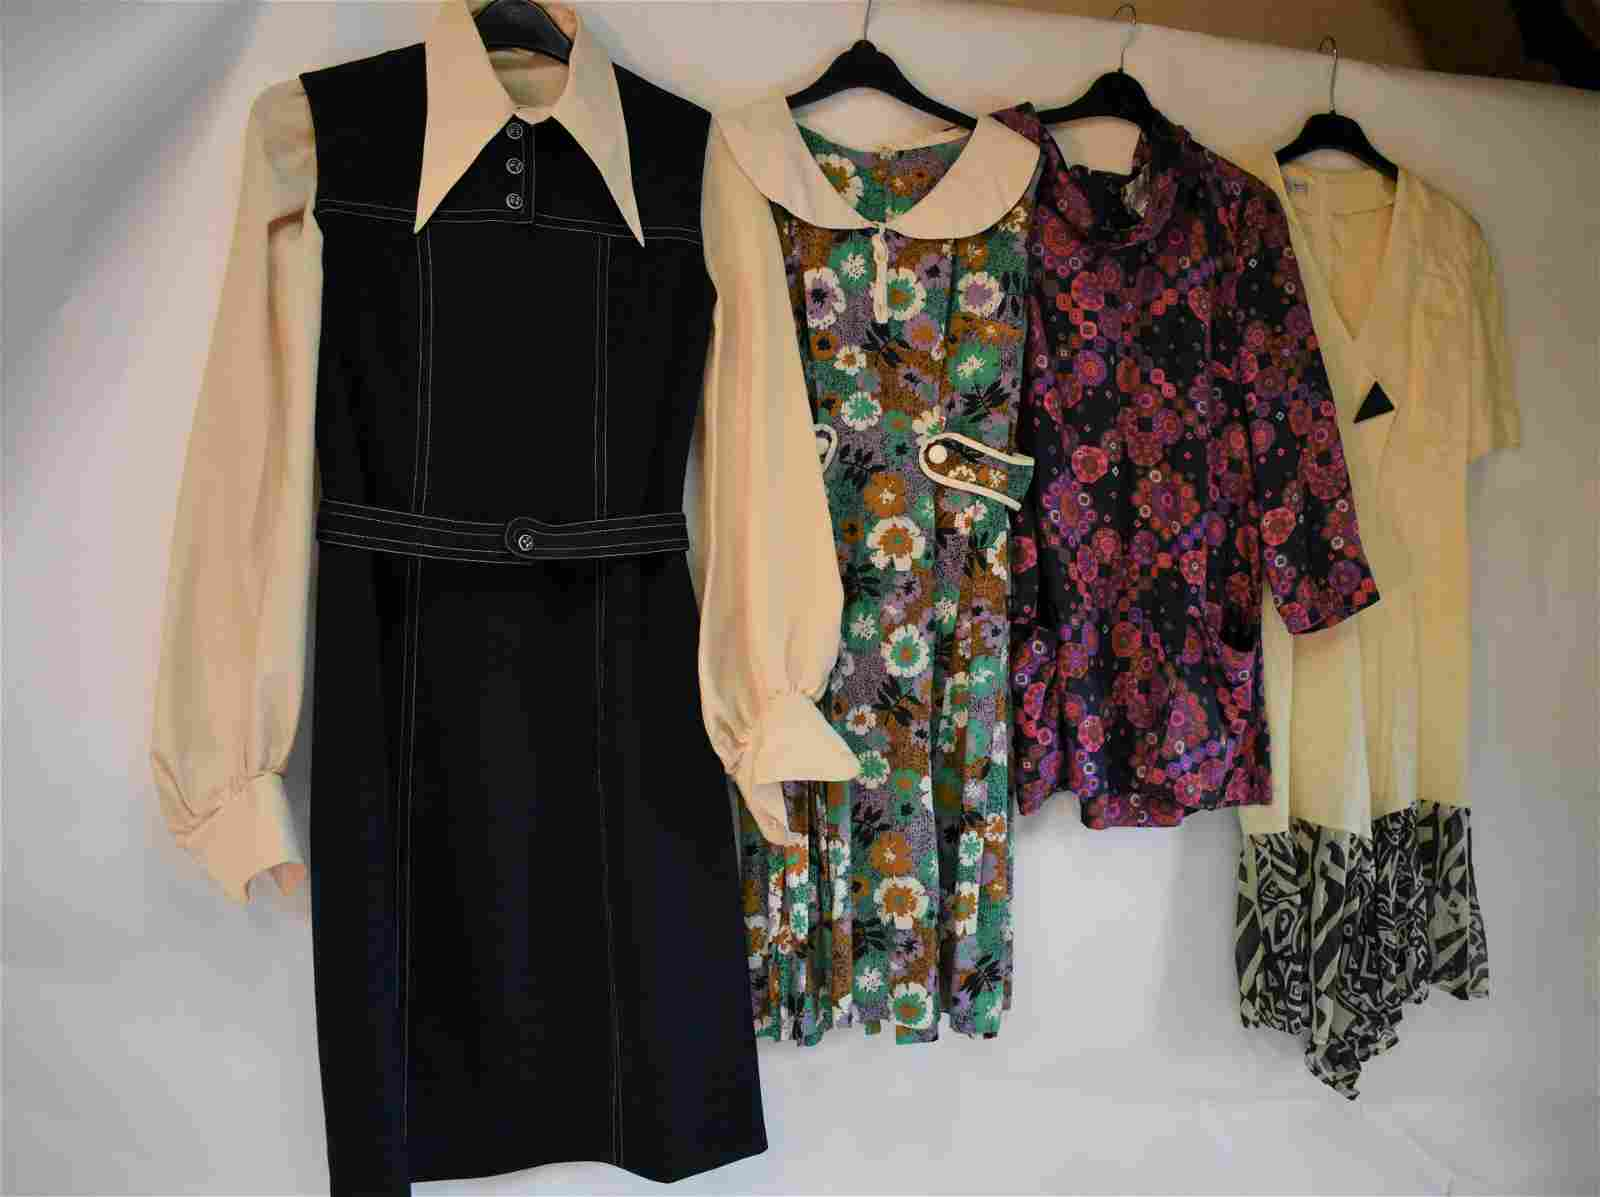 A collection of vintage ladies clothing